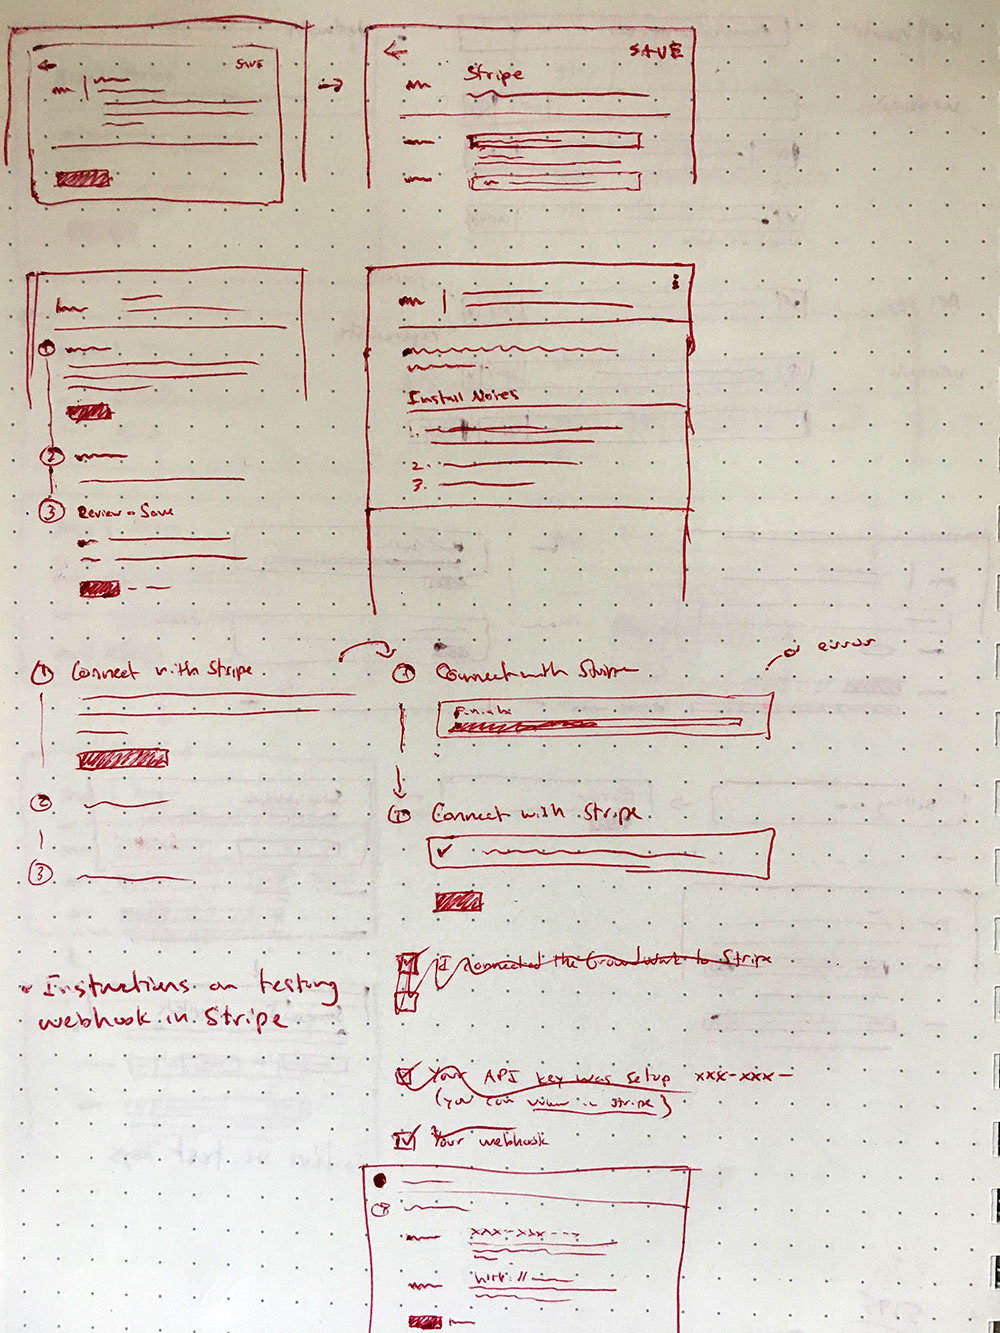 Photo of integration creation flow sketch